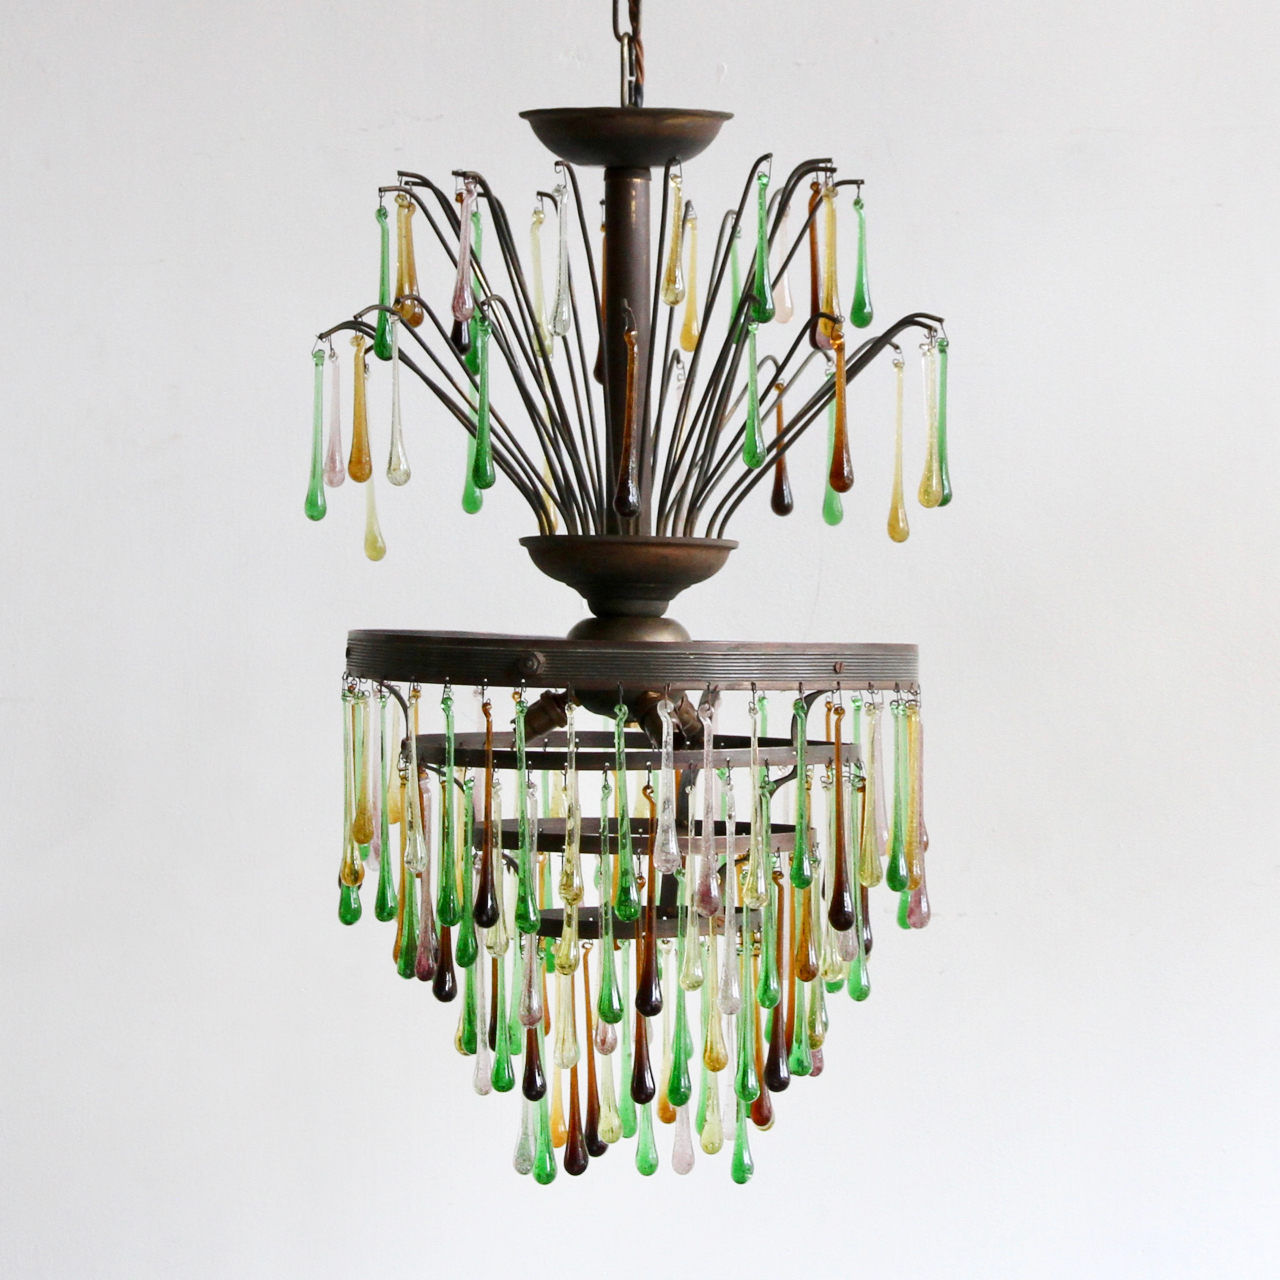 waterfall-chandelier-with-upper-walking-sticks.jpg